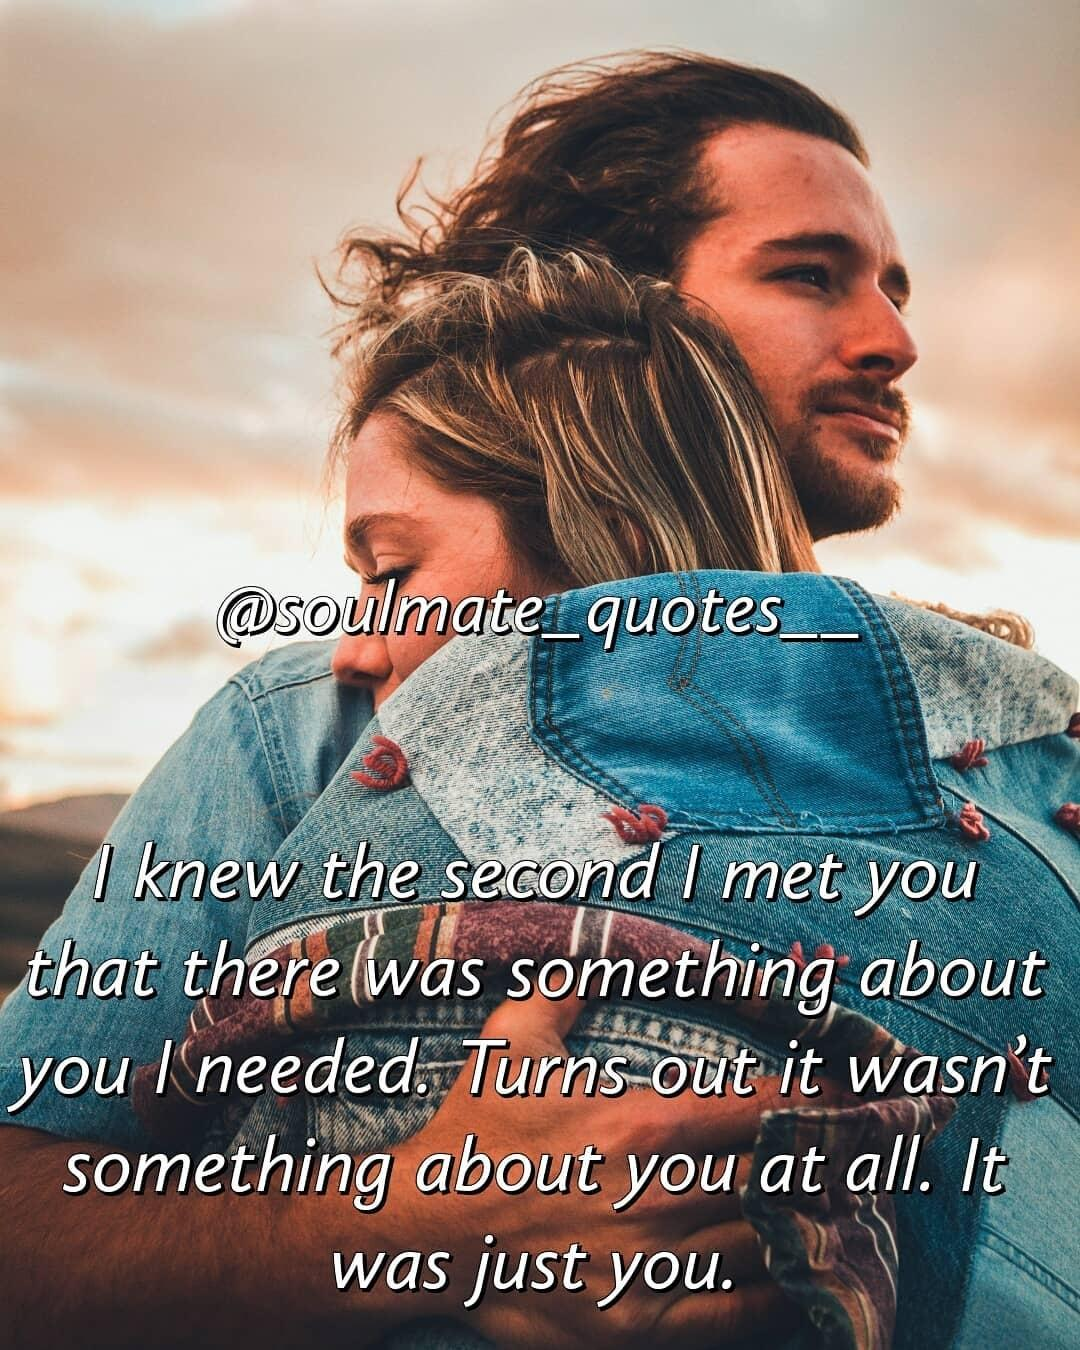 I met my soulmate quotes